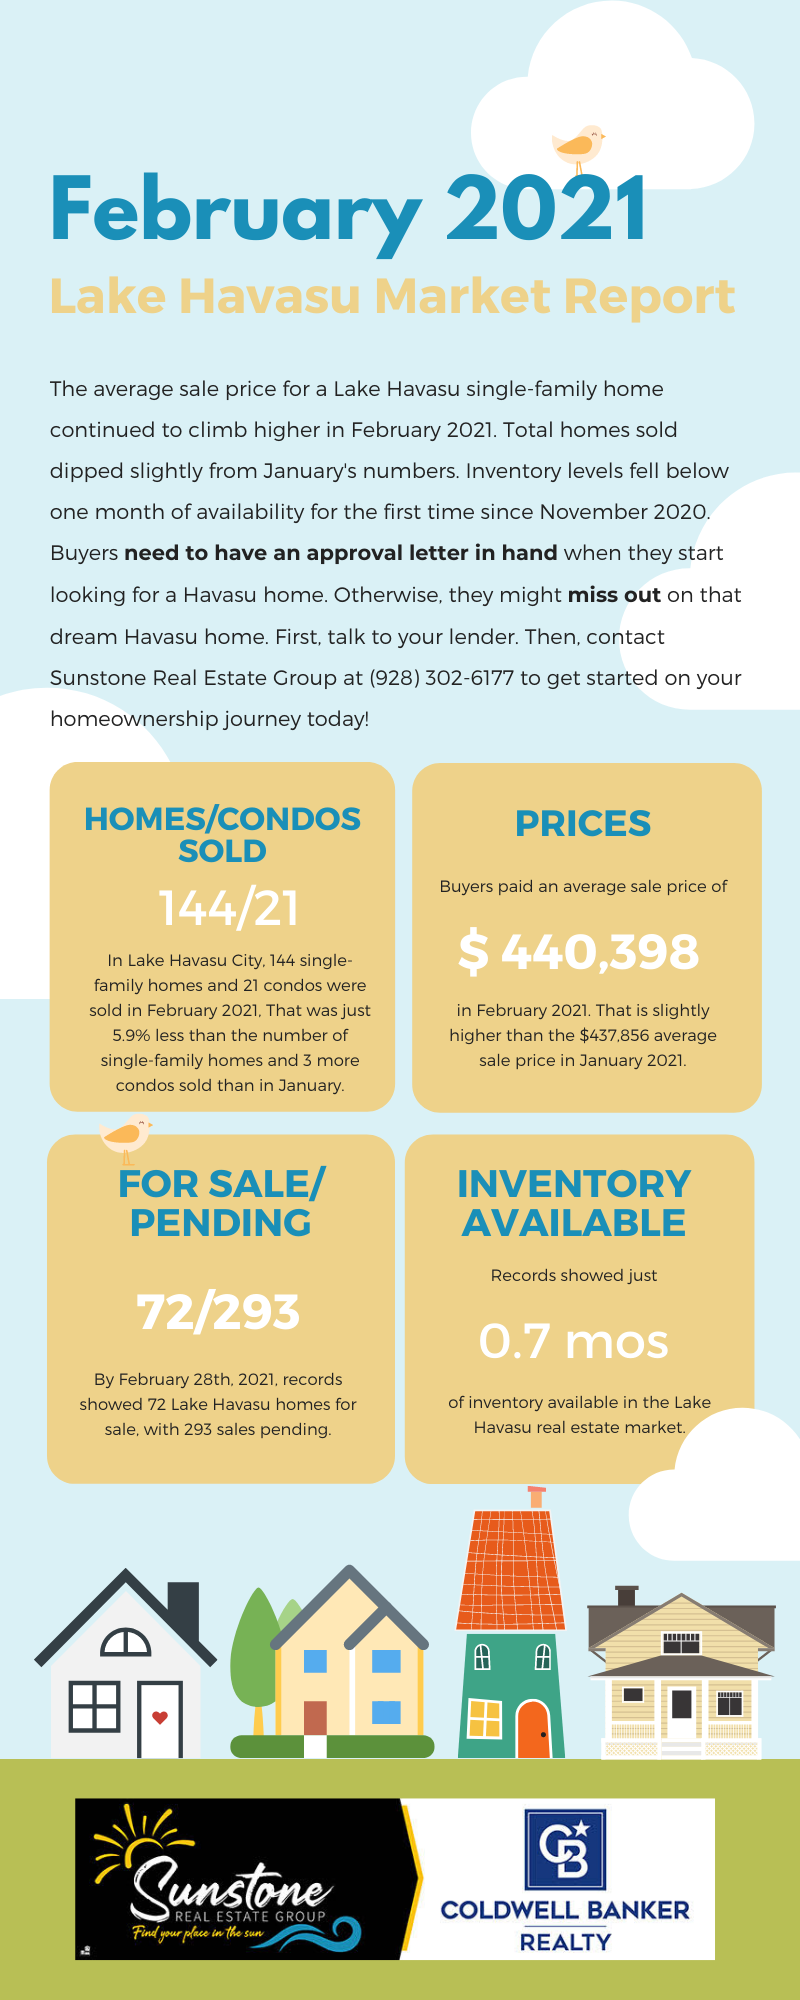 Havasu's seller's market just got a little tighter, according to the Lake Havasu Market Report for February 2021. Inventory hit below one month availability. Prices rose yet again. You need to start pre-approval proceedings with your lender ASAP to be ready to submit an offer when you find a home you love.